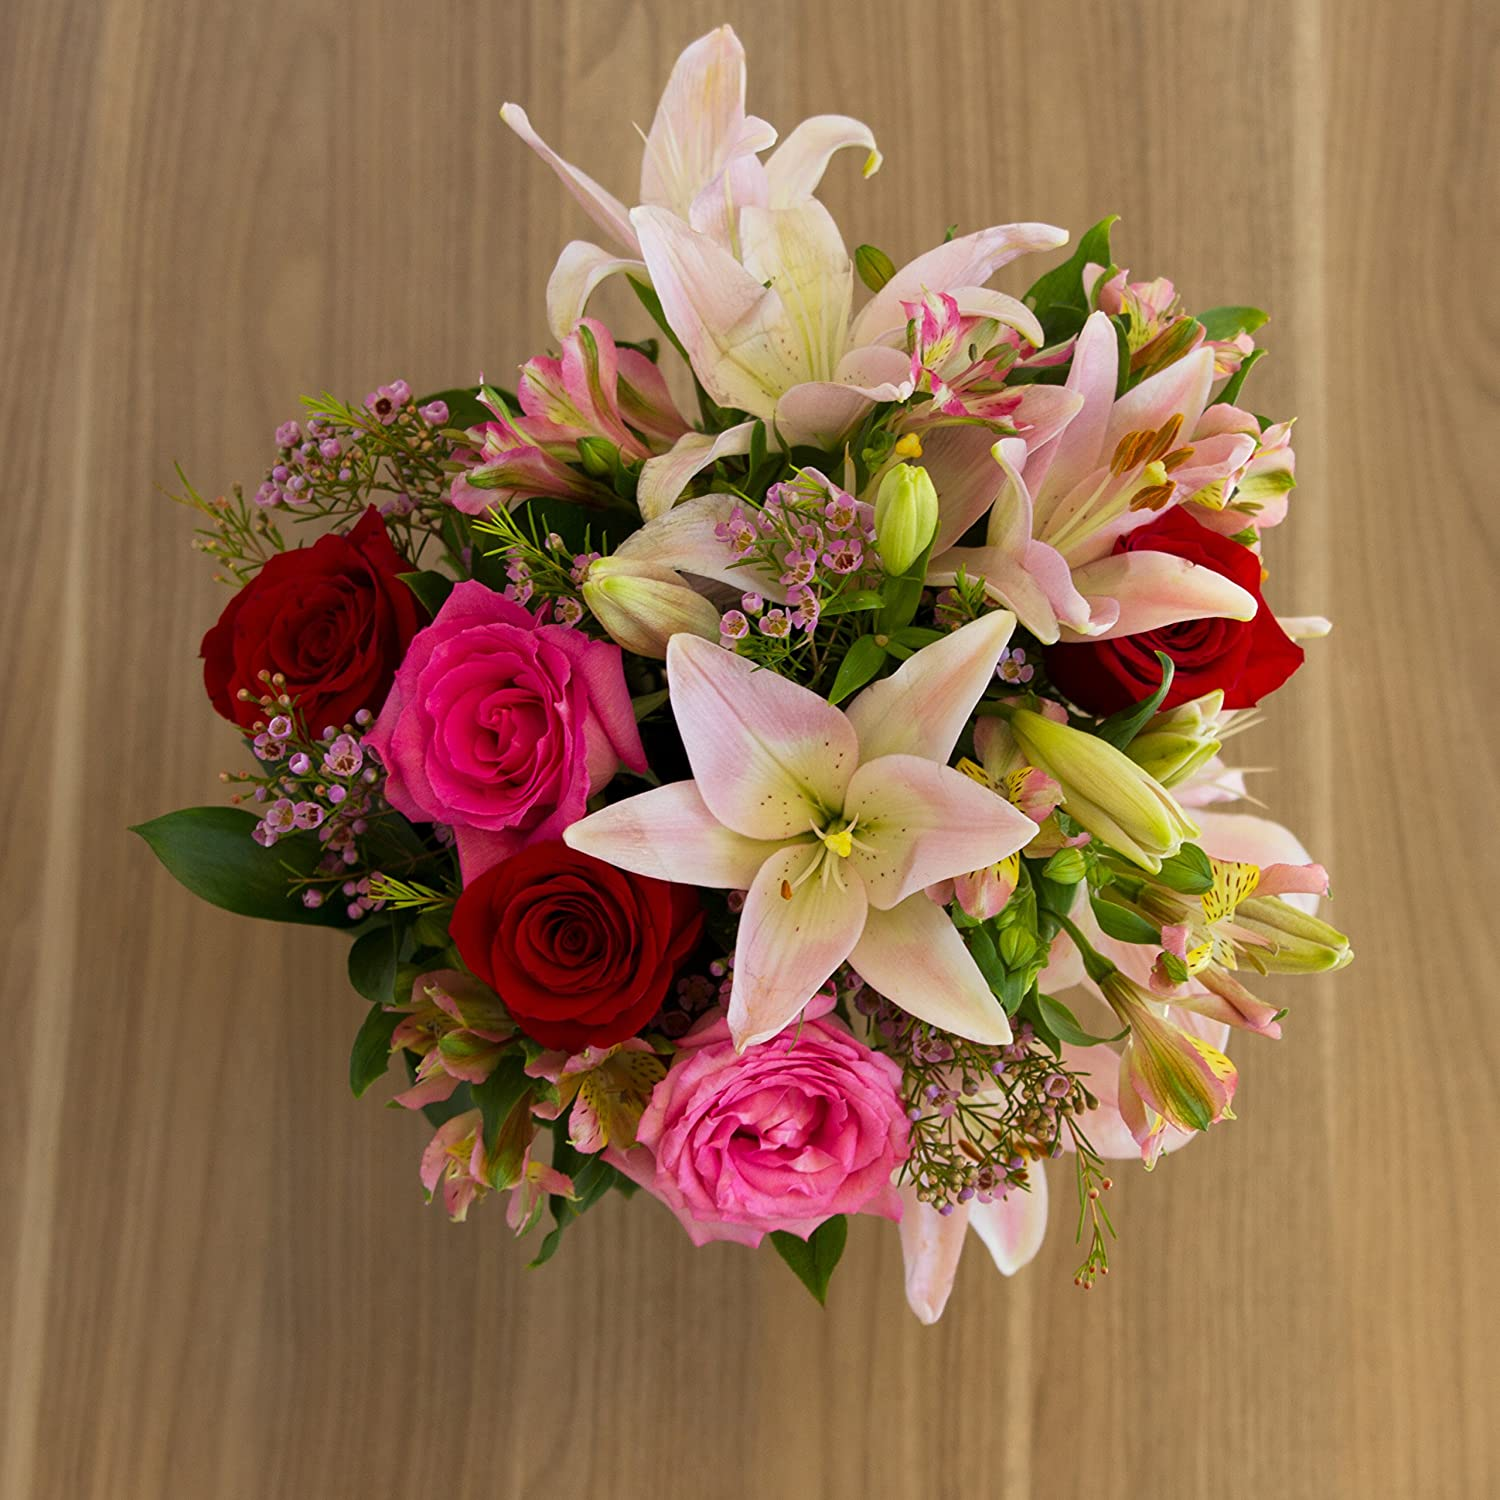 Amazon Flowers Rose Lily Celebration Free Vase Included